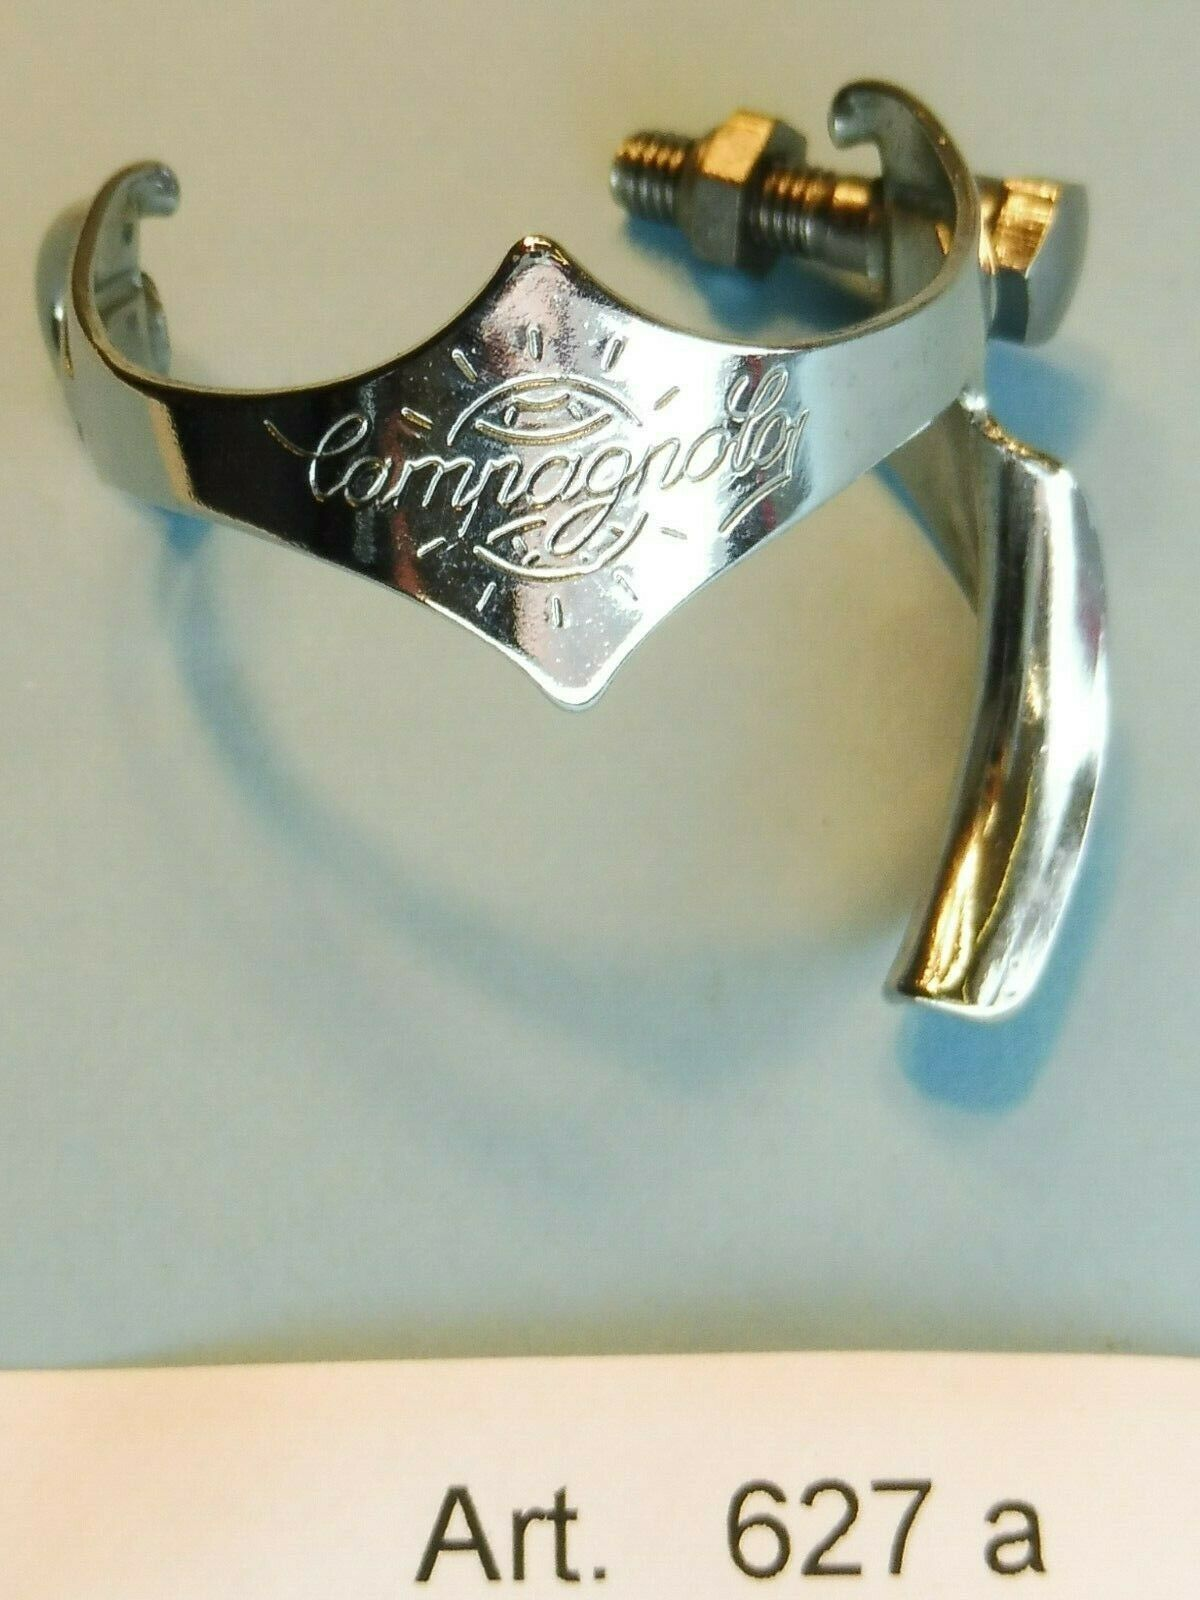 Campagnolo Art.627a RH DT Single Cable tunnel NOS L/'eroica Clip on